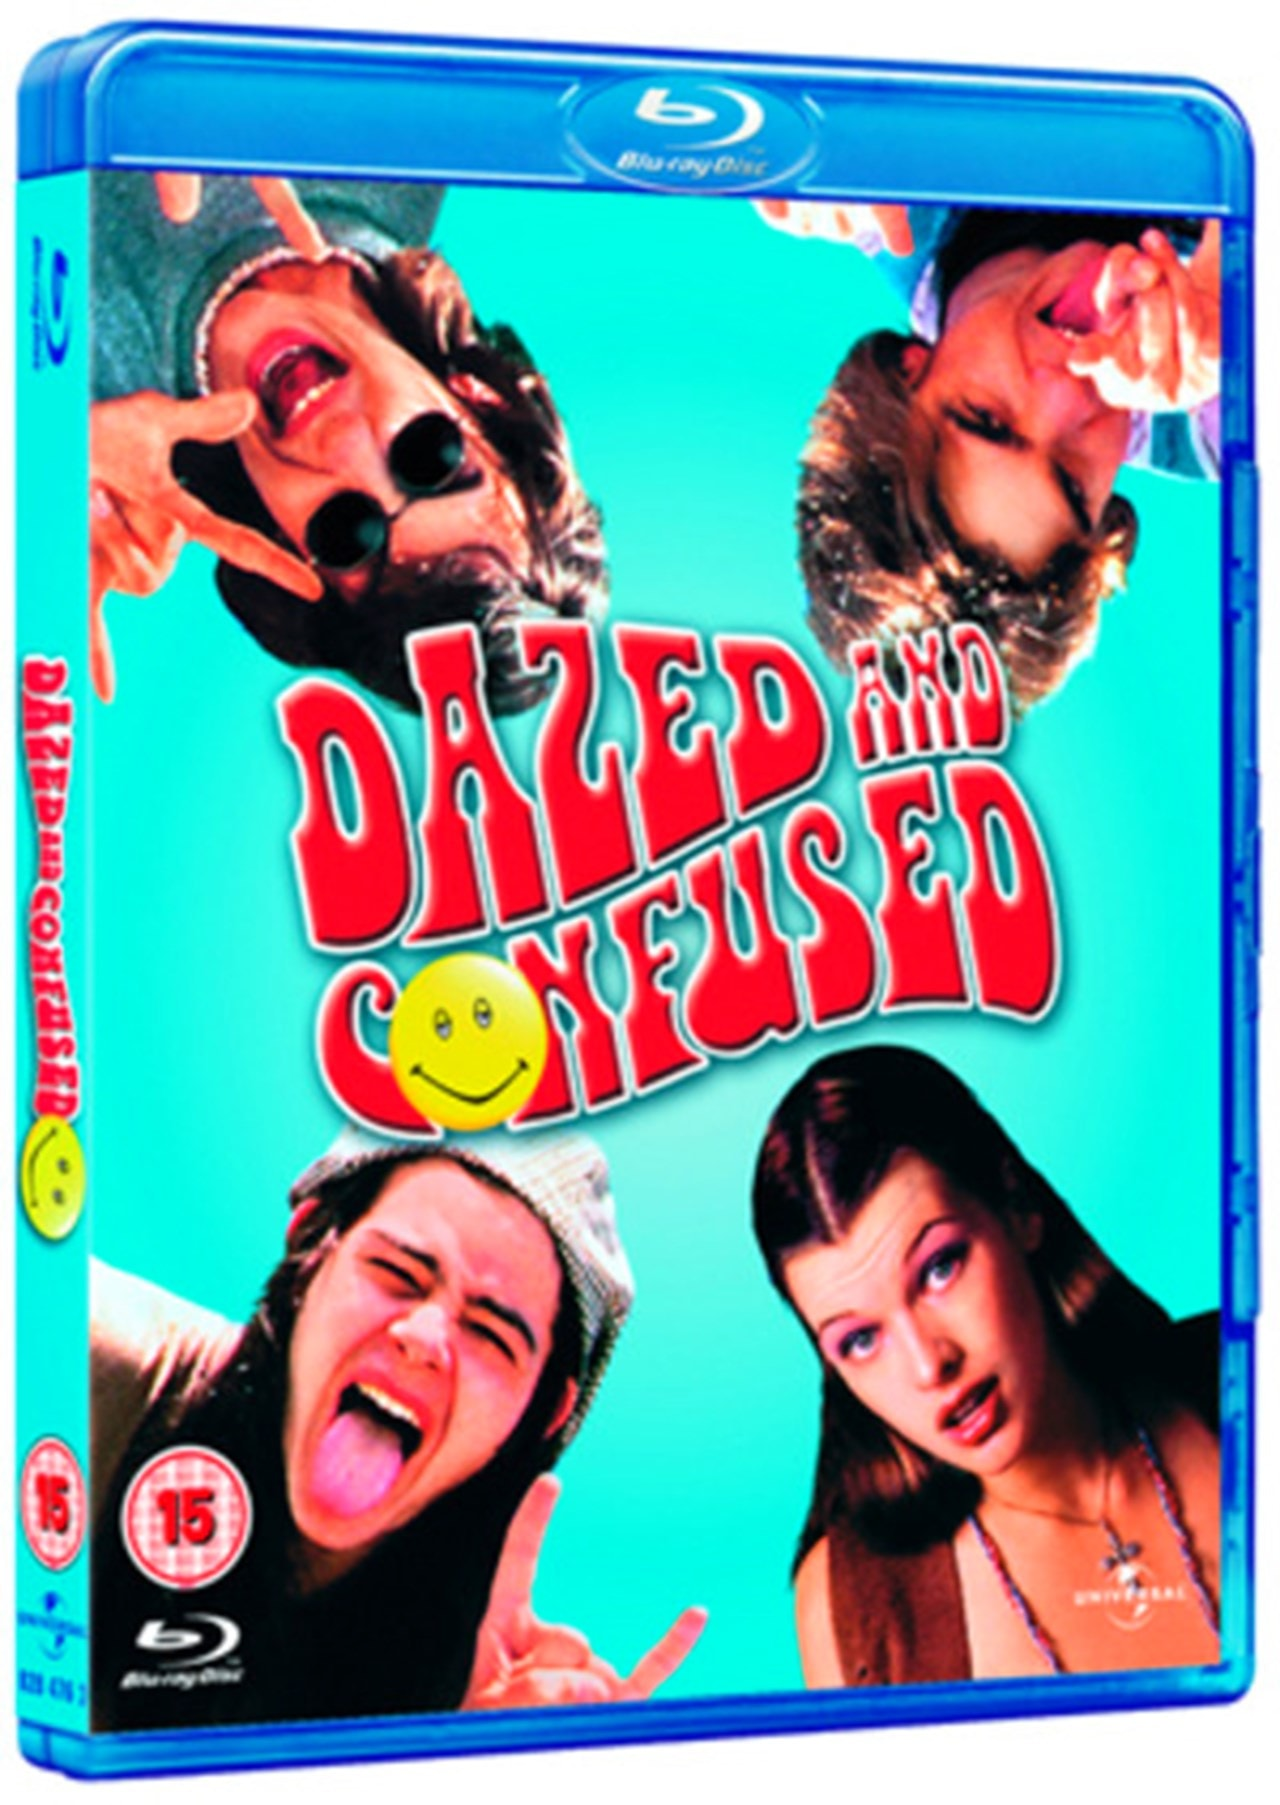 Dazed and Confused - 1